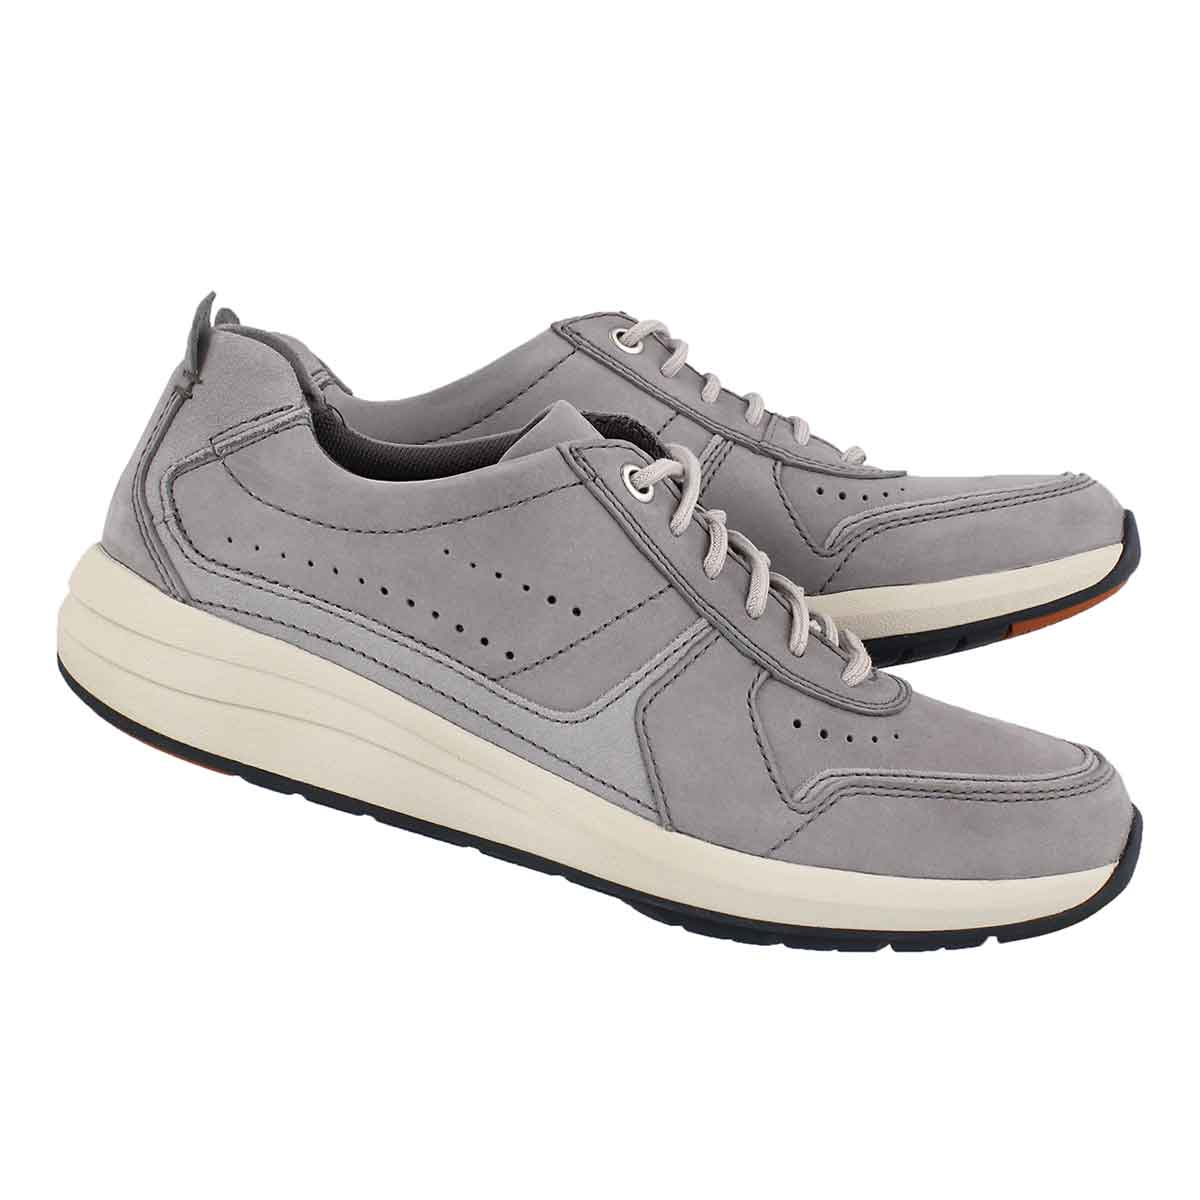 Mns UnCoast Form grey sneaker